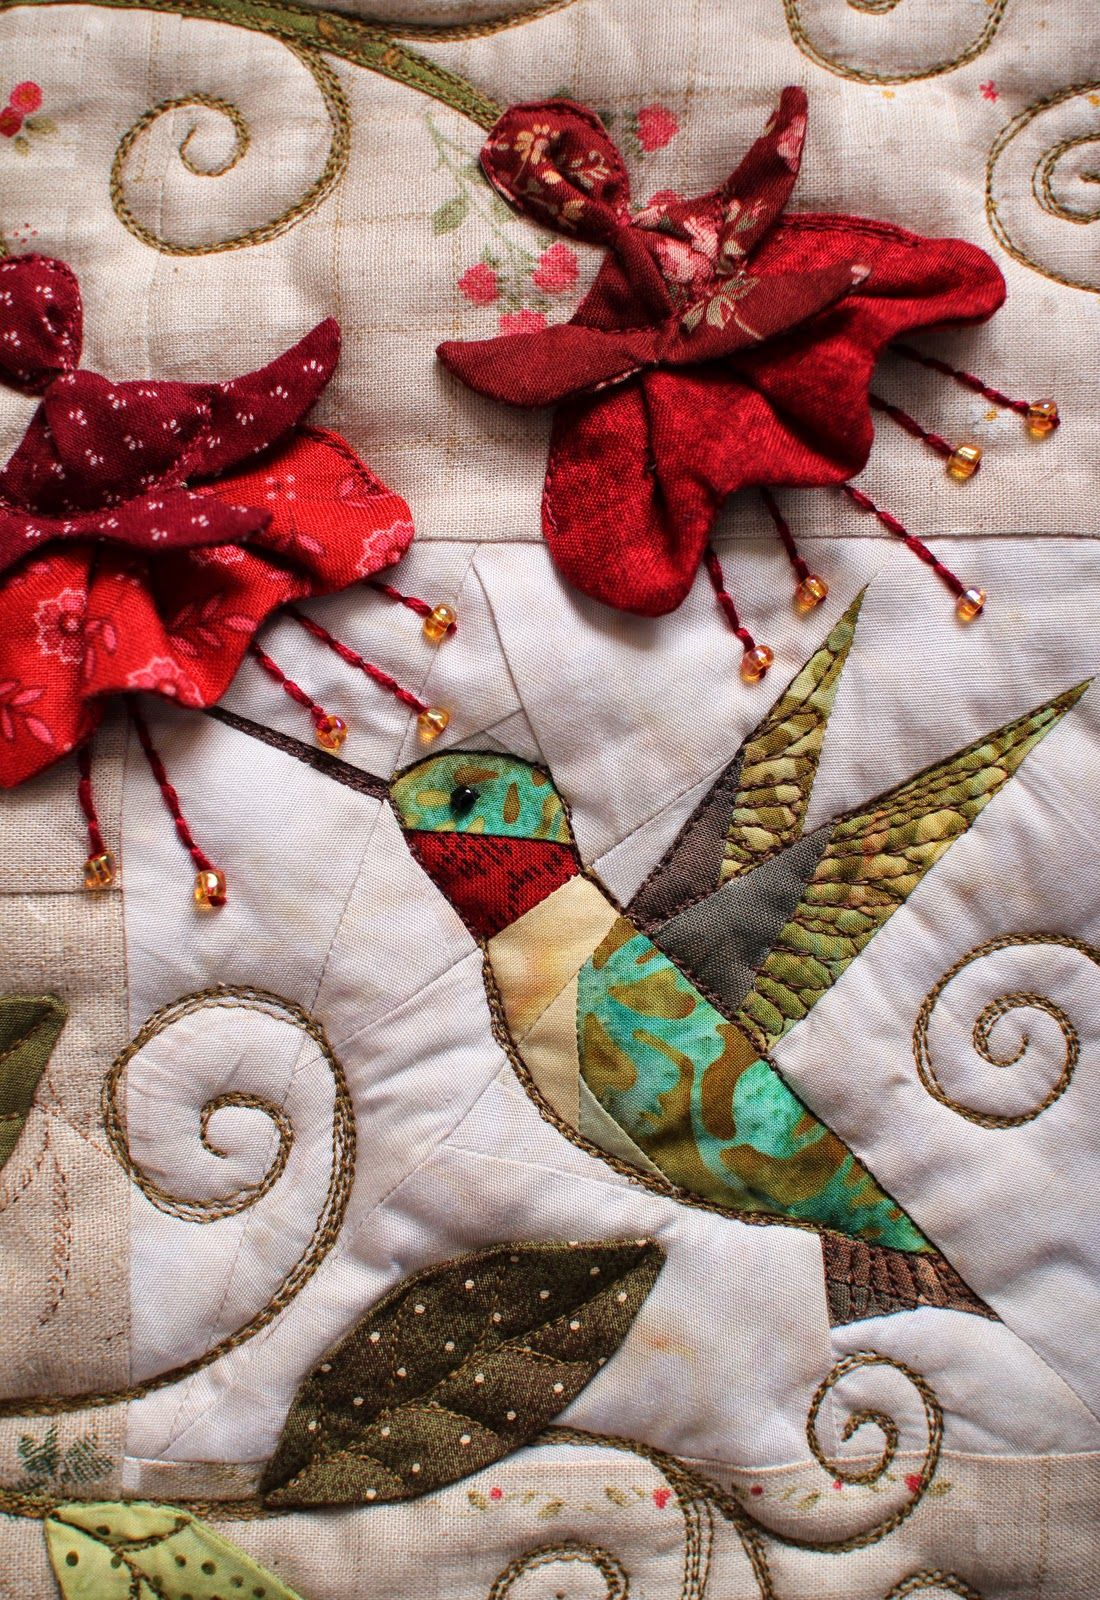 Hummingbird Pillow | Hummingbird, Pillows and Applique quilts : hummingbird quilts - Adamdwight.com